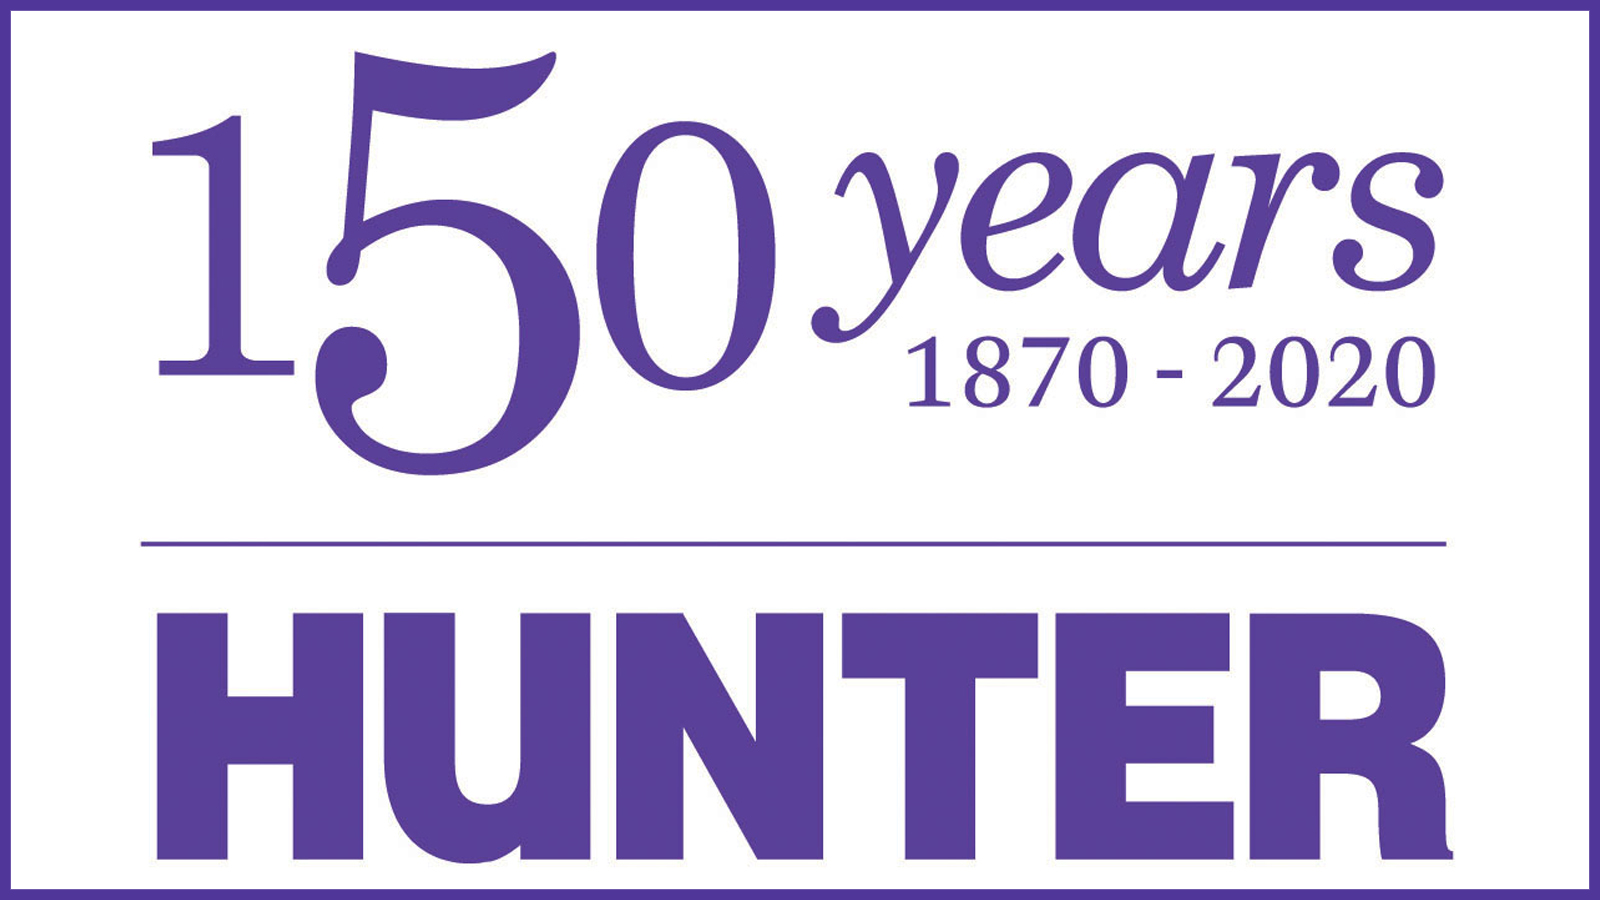 Hunter College 150th anniversary logo